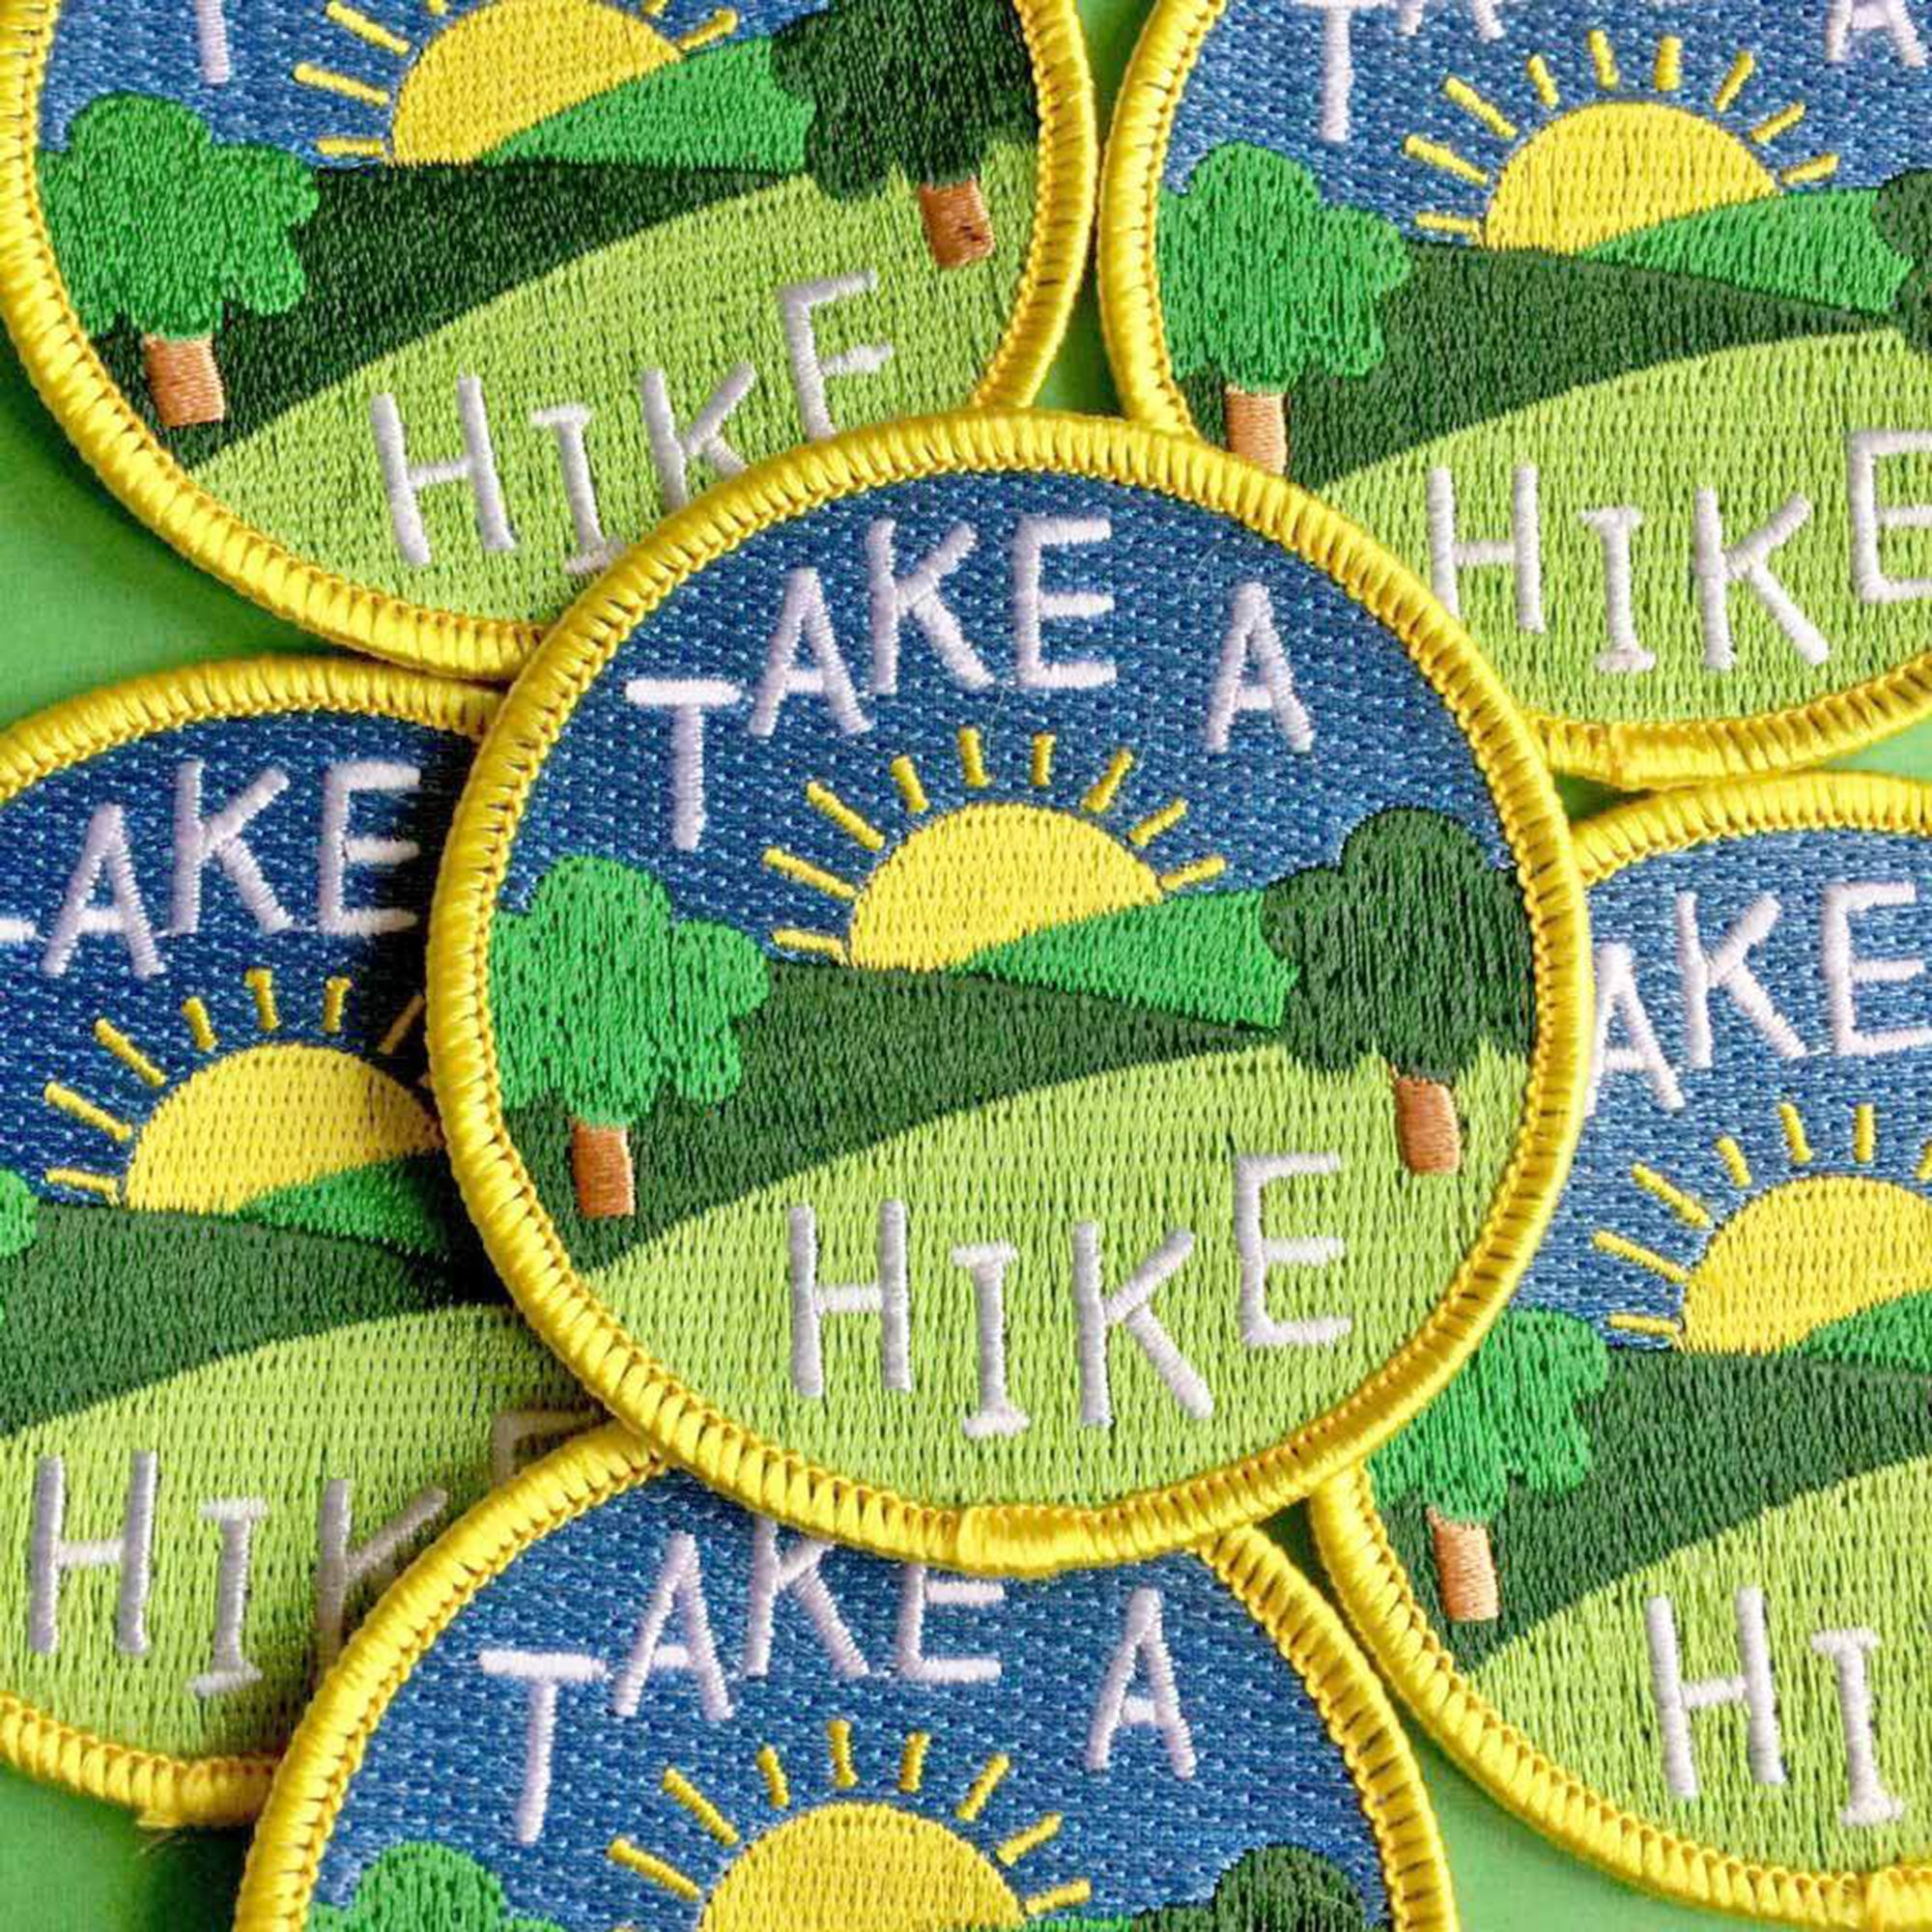 Take a Hike patch - Inspired